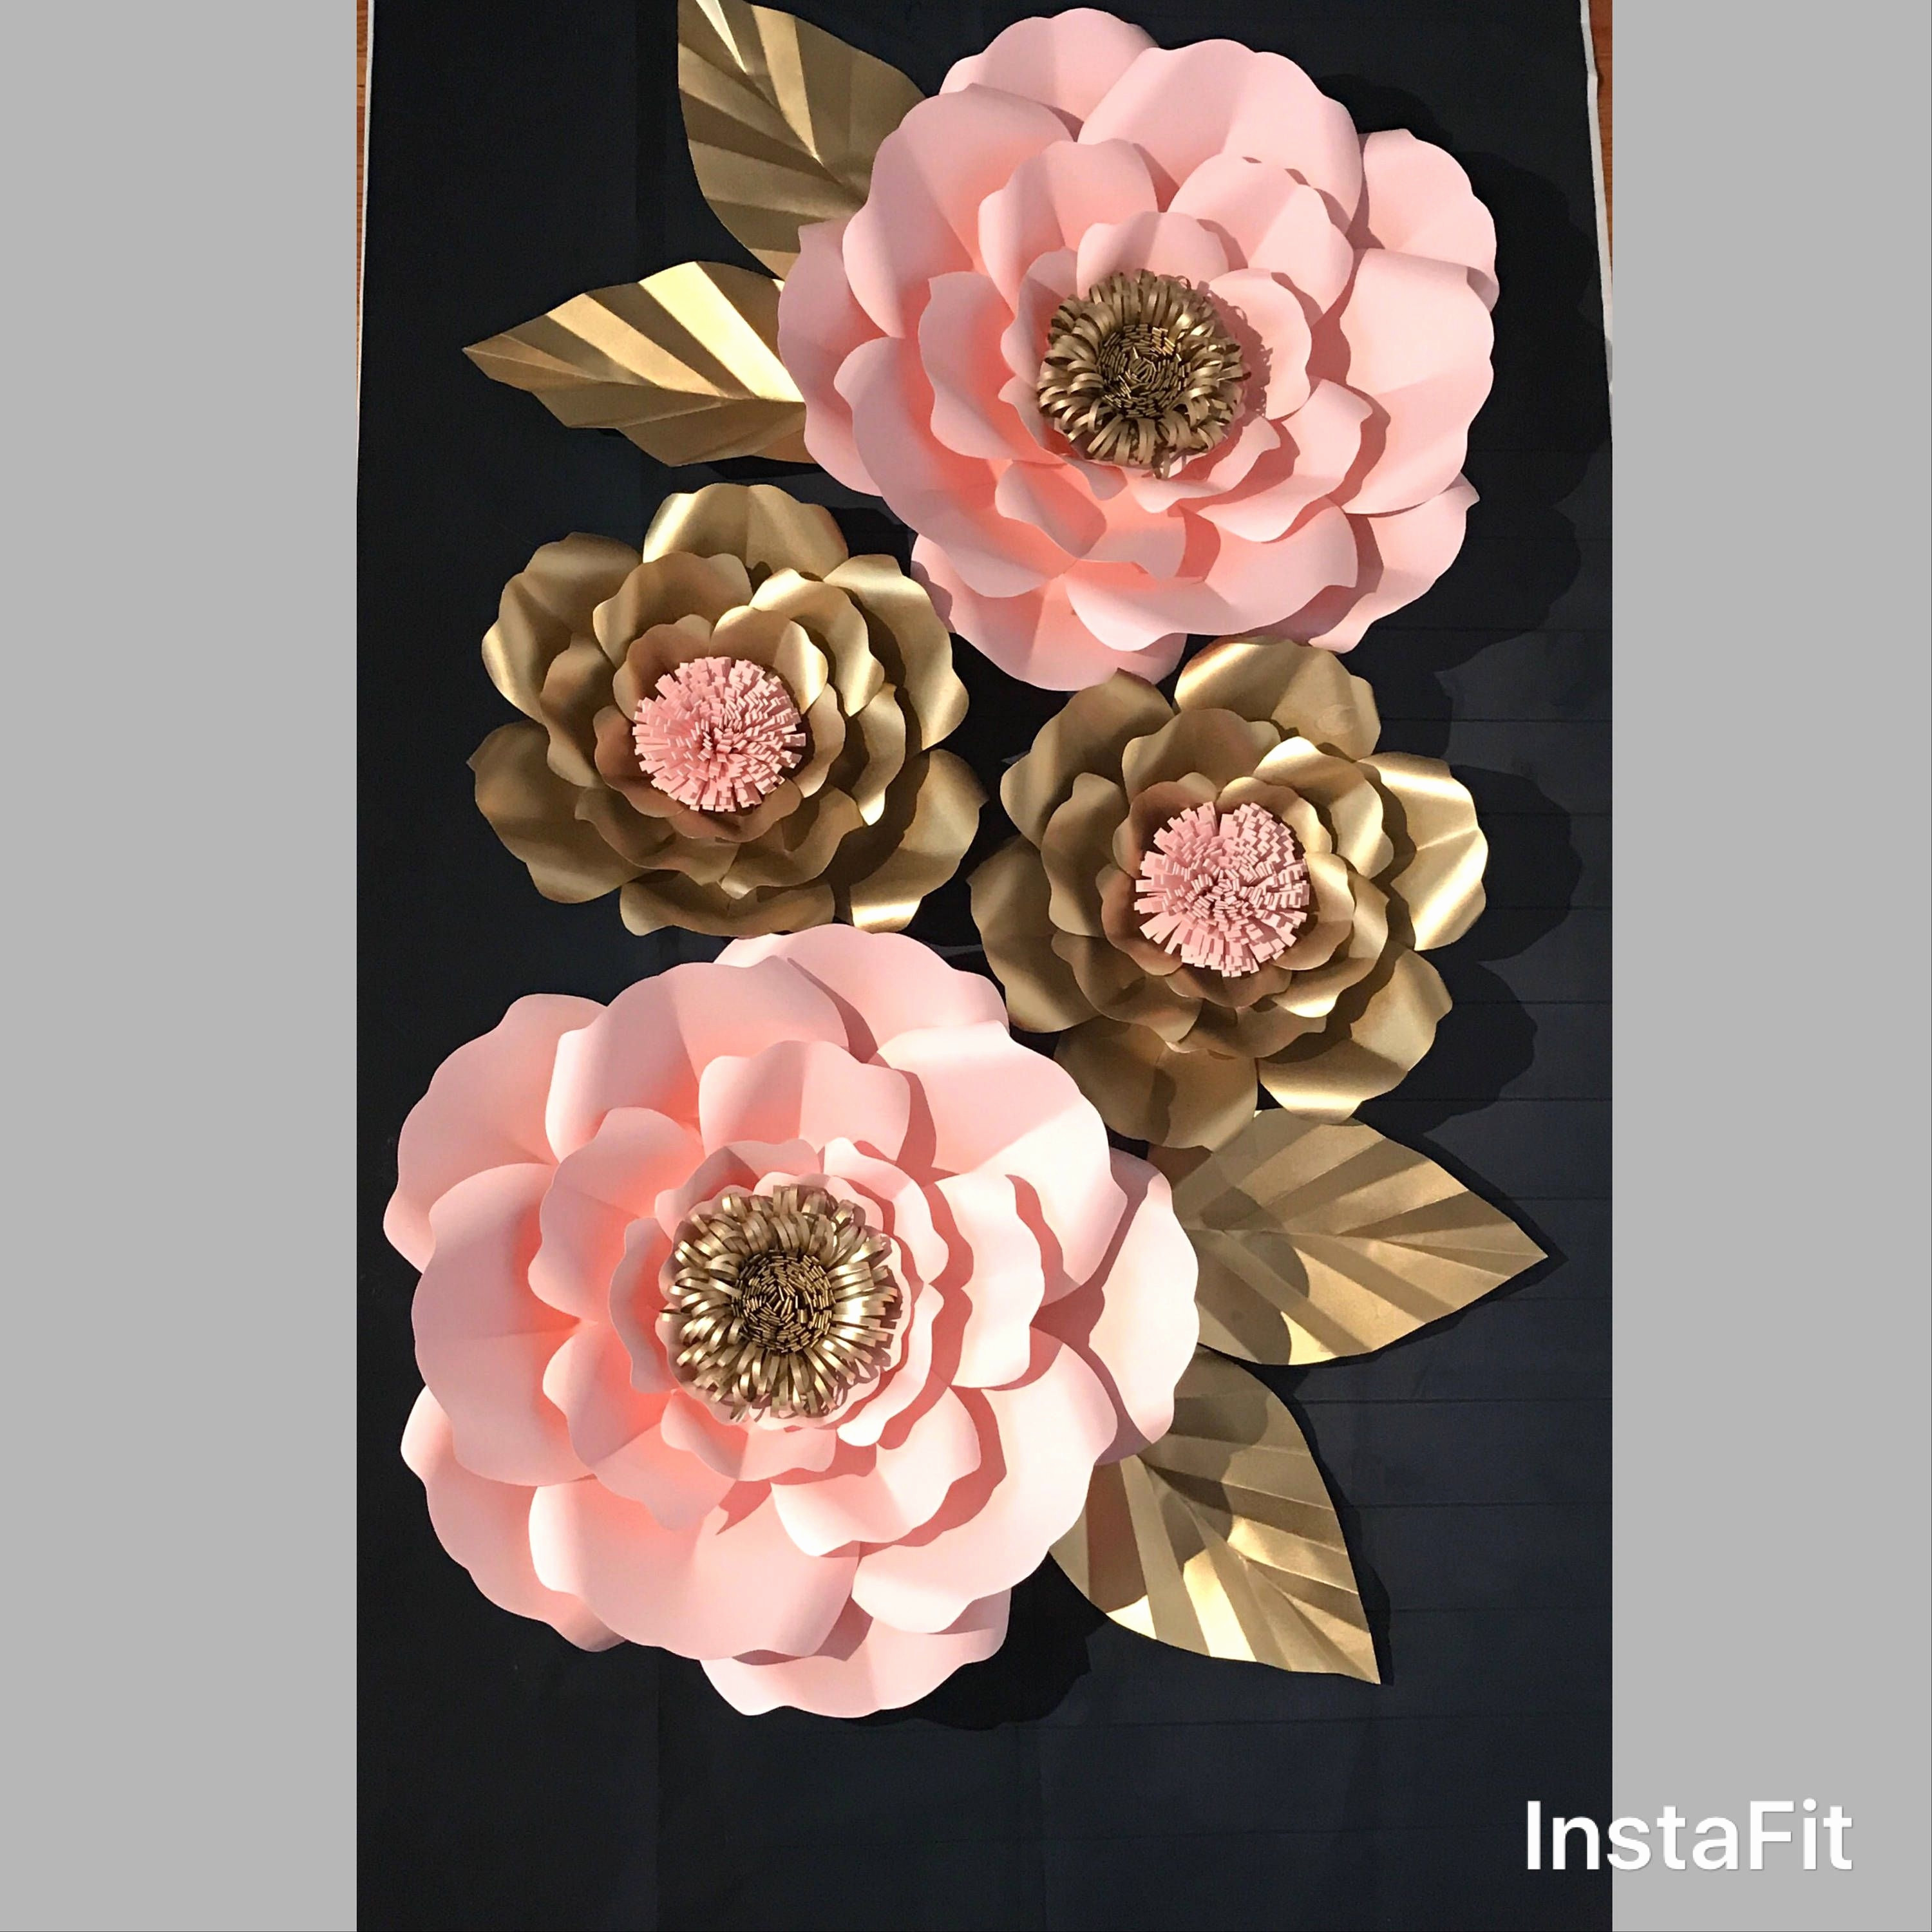 headstone vases of metal vase wall decor images floral decor for home beautiful decor pertaining to metal vase wall decor images floral decor for home beautiful decor floral decor floral decor 0d